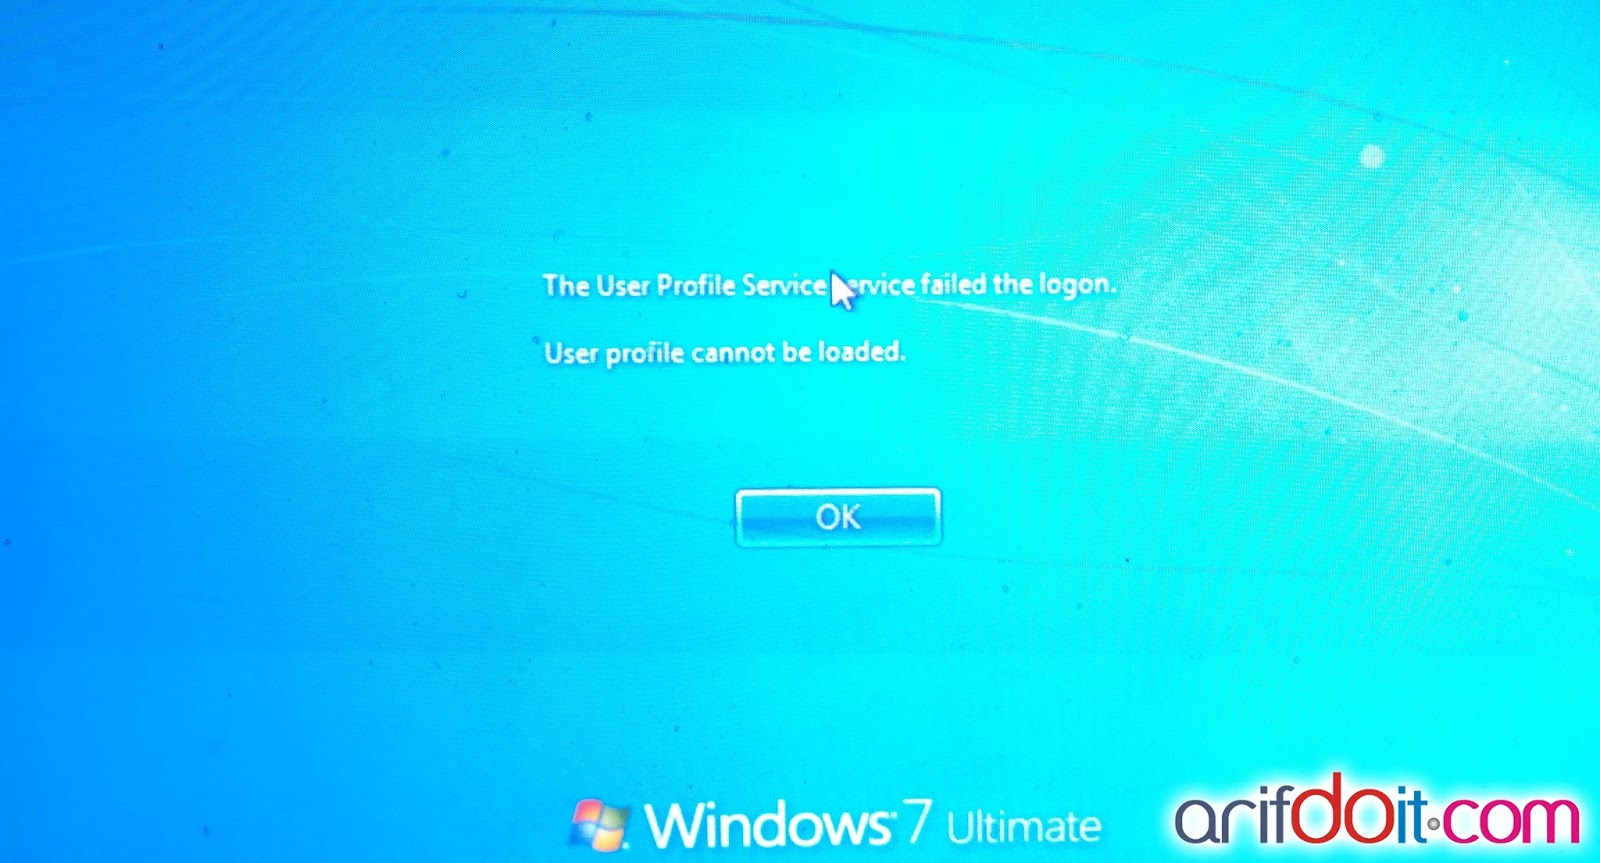 windows 7 unable to login to user profile